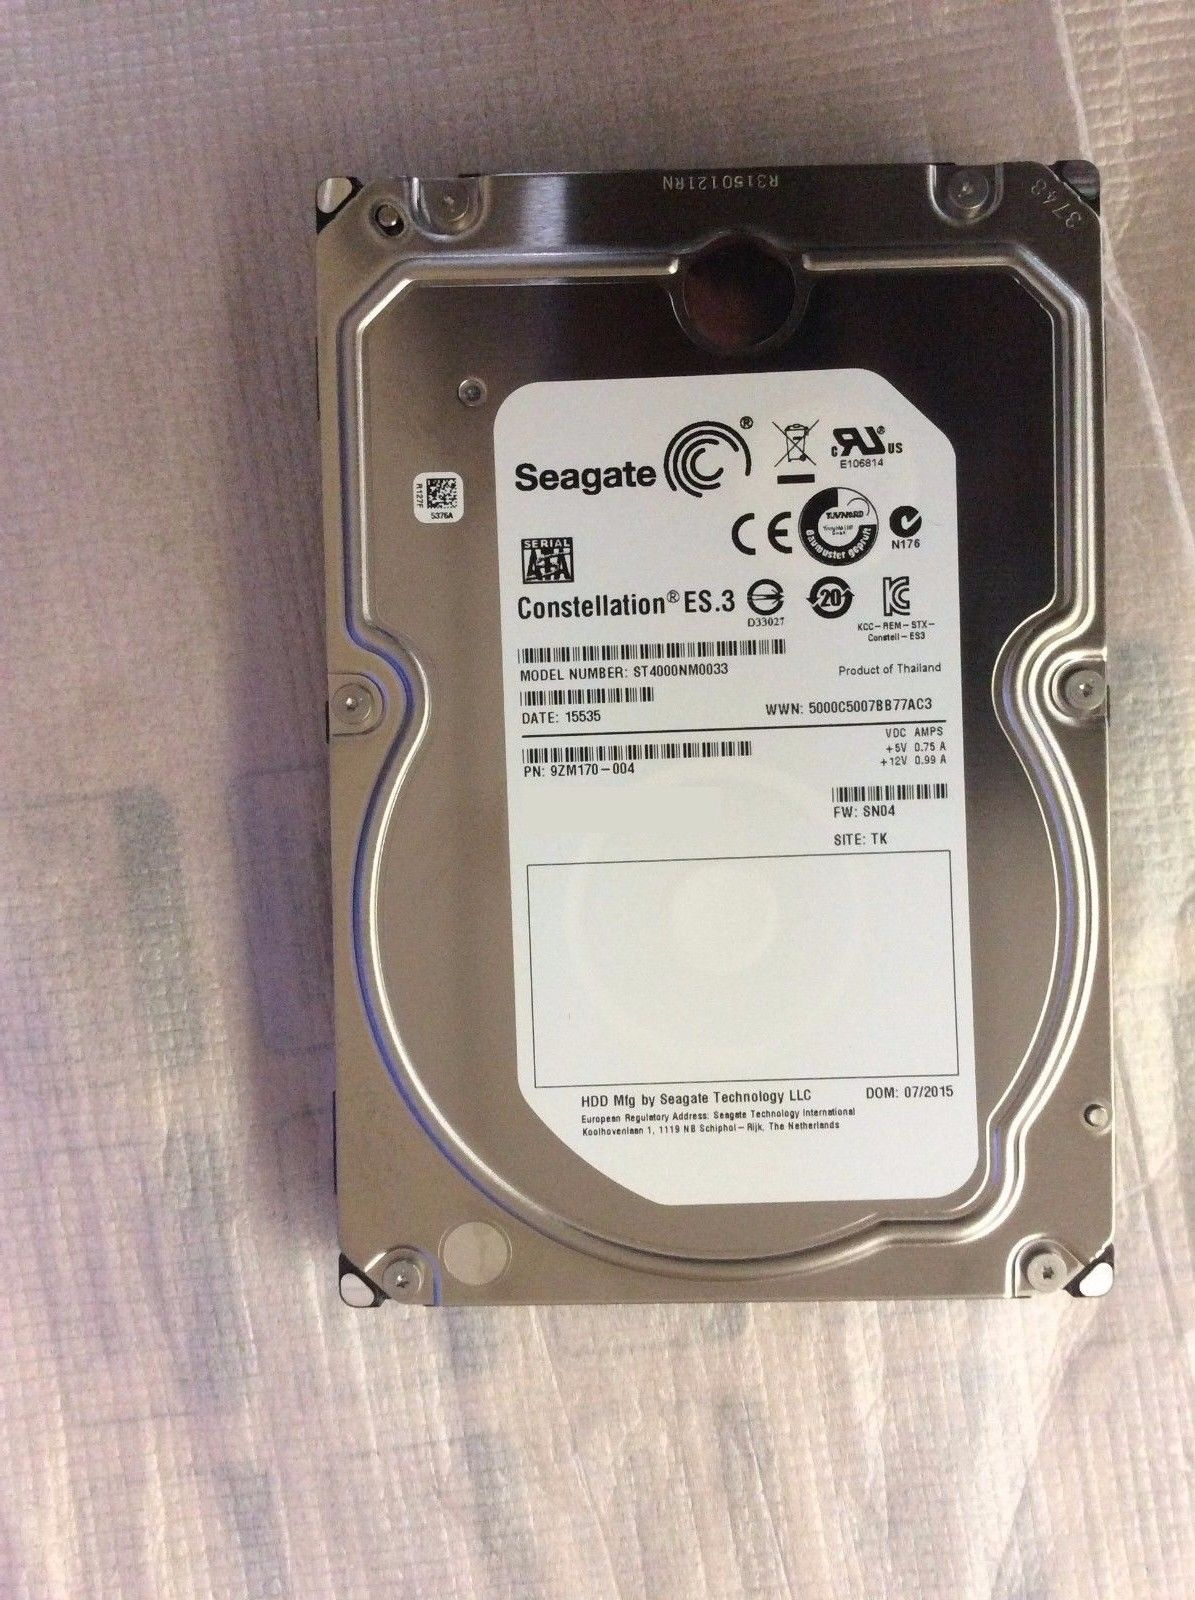 ST4000NM0033 4TB 7200RPM HDD